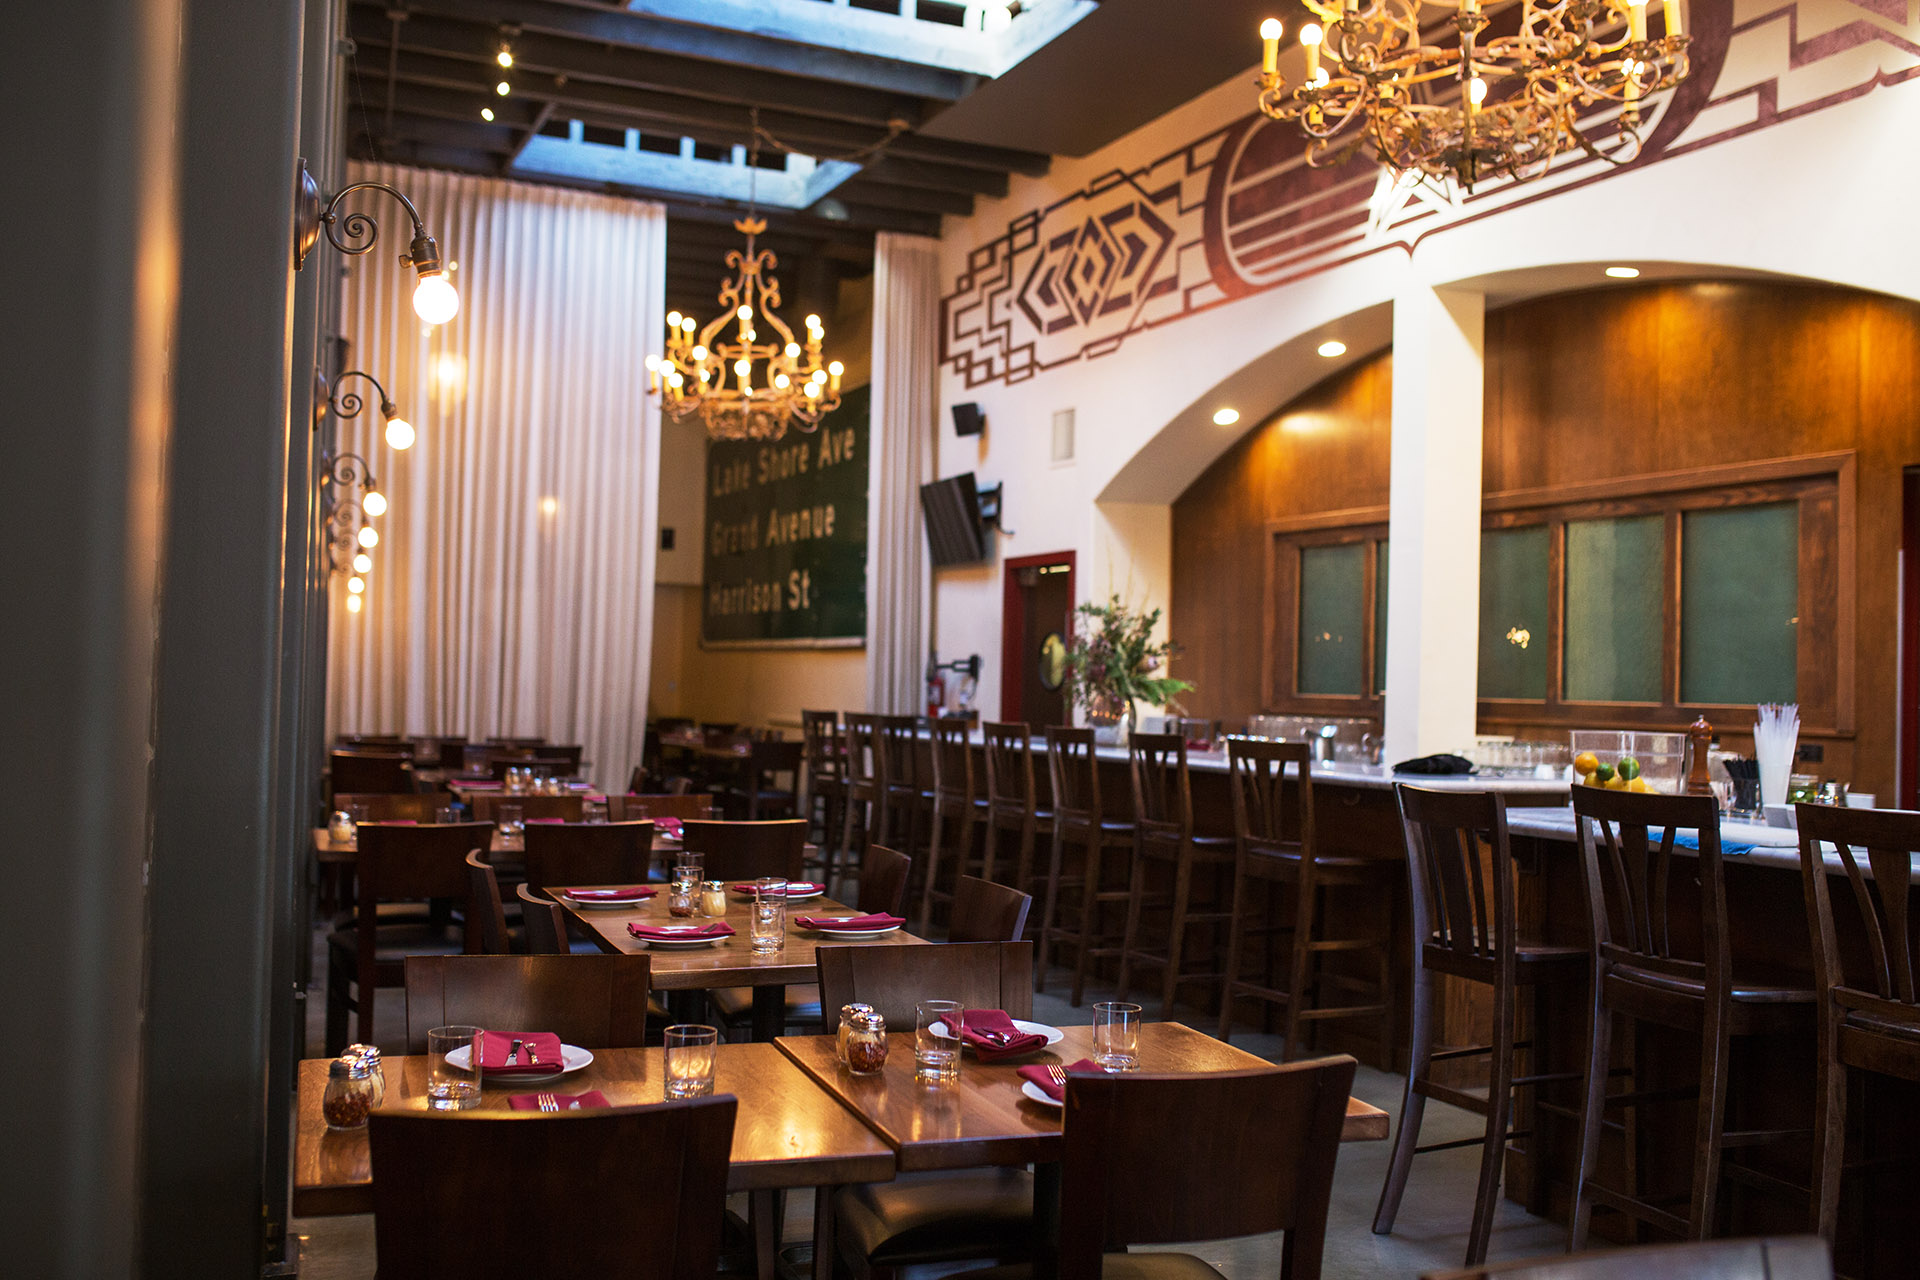 Commercial Restaurants - Most of our team has had a start in restaurants, which is where all aspects of construction comes into play; from working with architects, designers, permitting, zoning and so much more. We can start restaurants for clients from scratch.